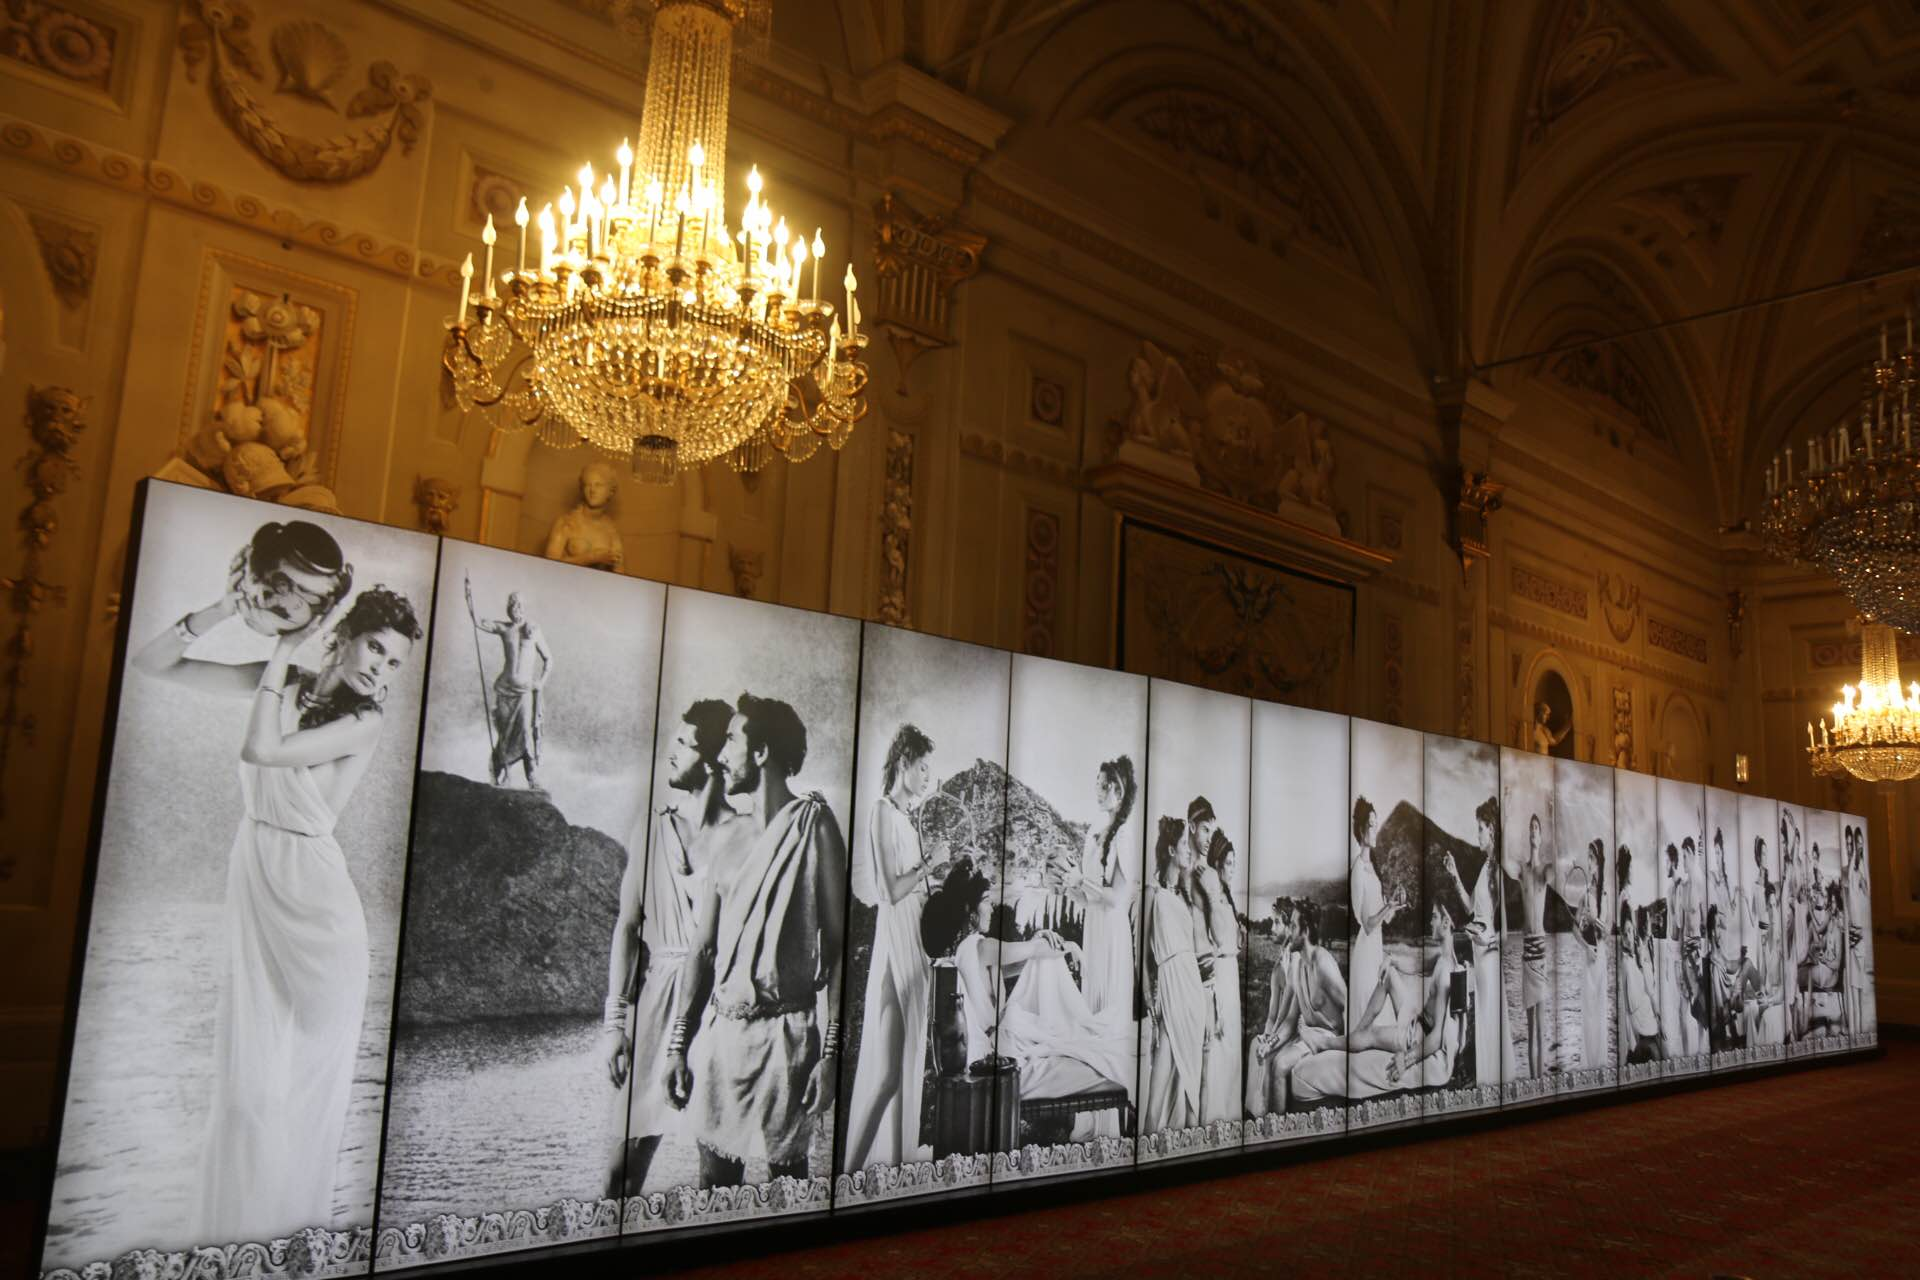 asvof-2016-06-16-karl-lagerfelds-vision-fashion-exhibit-palazzo-pitti-florence-text-and-images.jpg